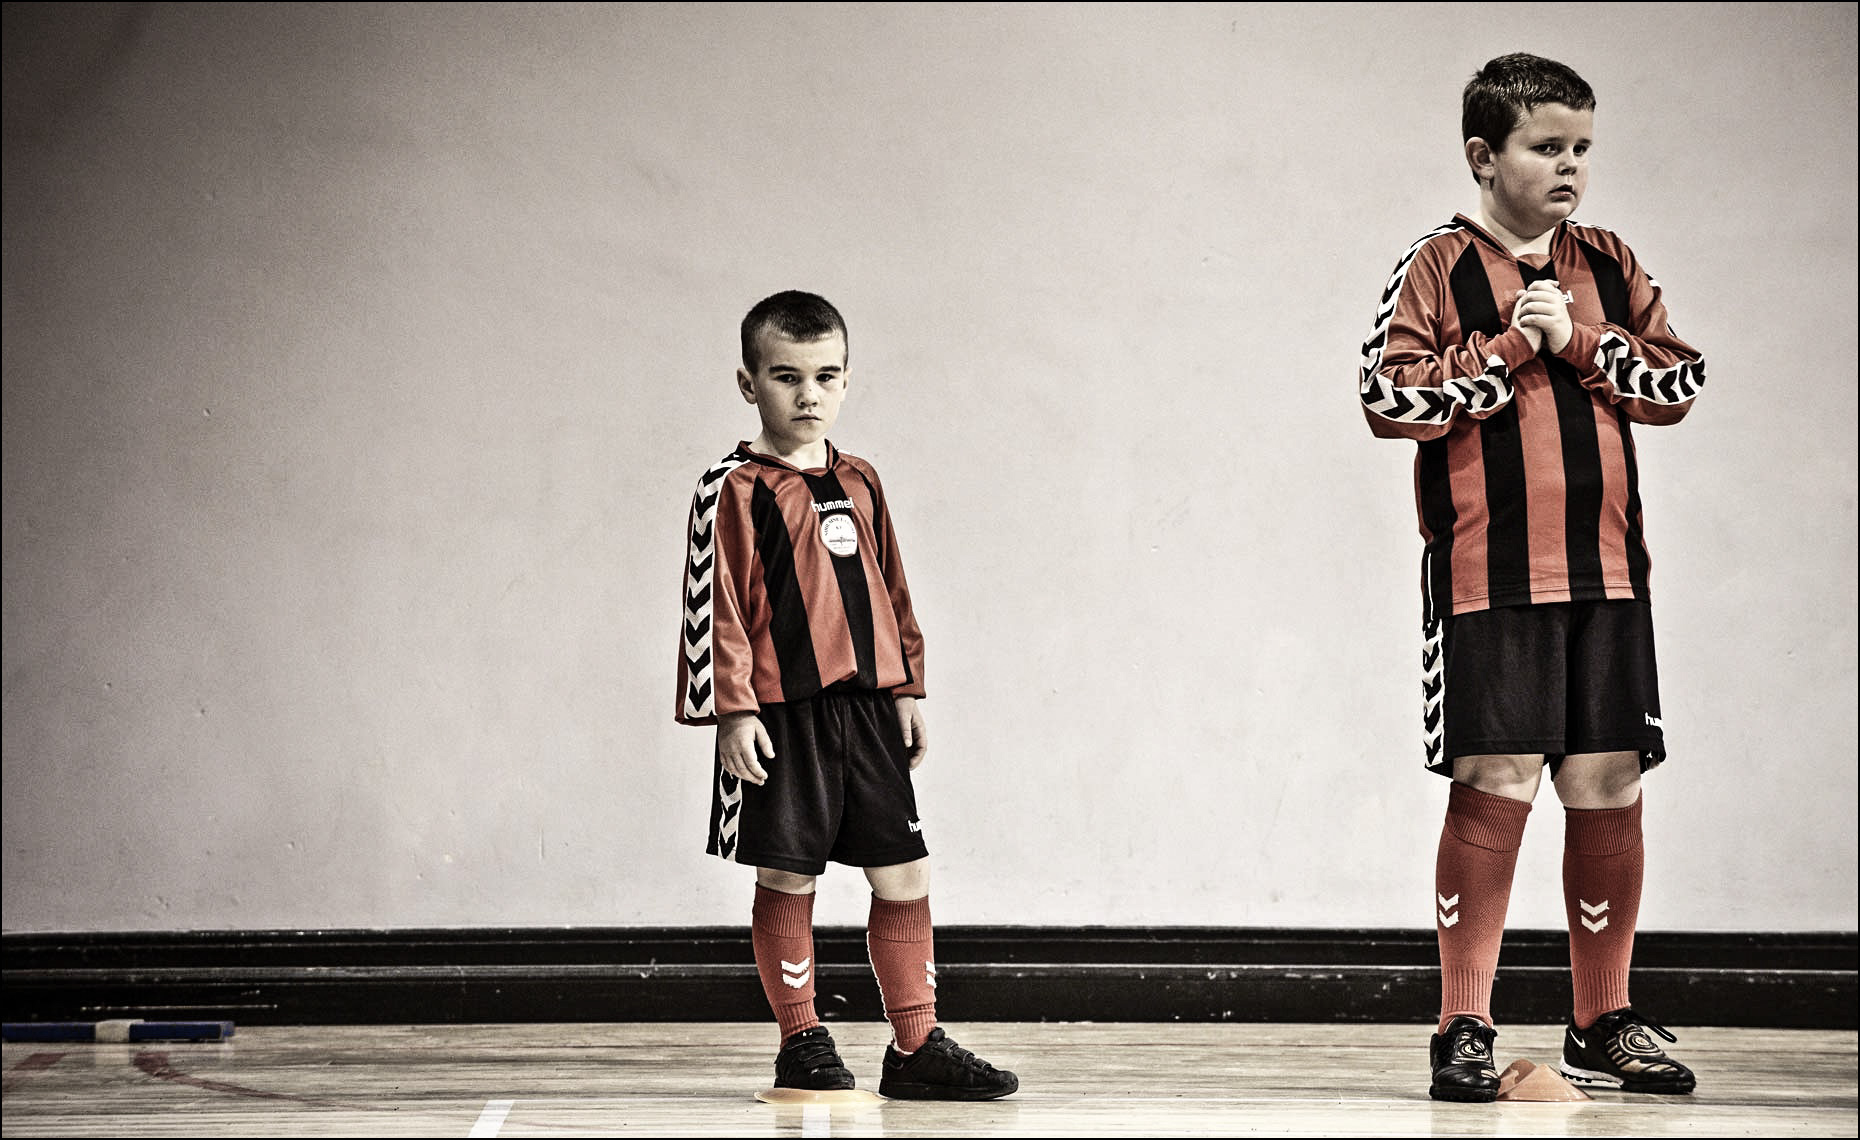 42 youth soccer football charity Scotland  ©Paul Hampton Photographer Glasgow